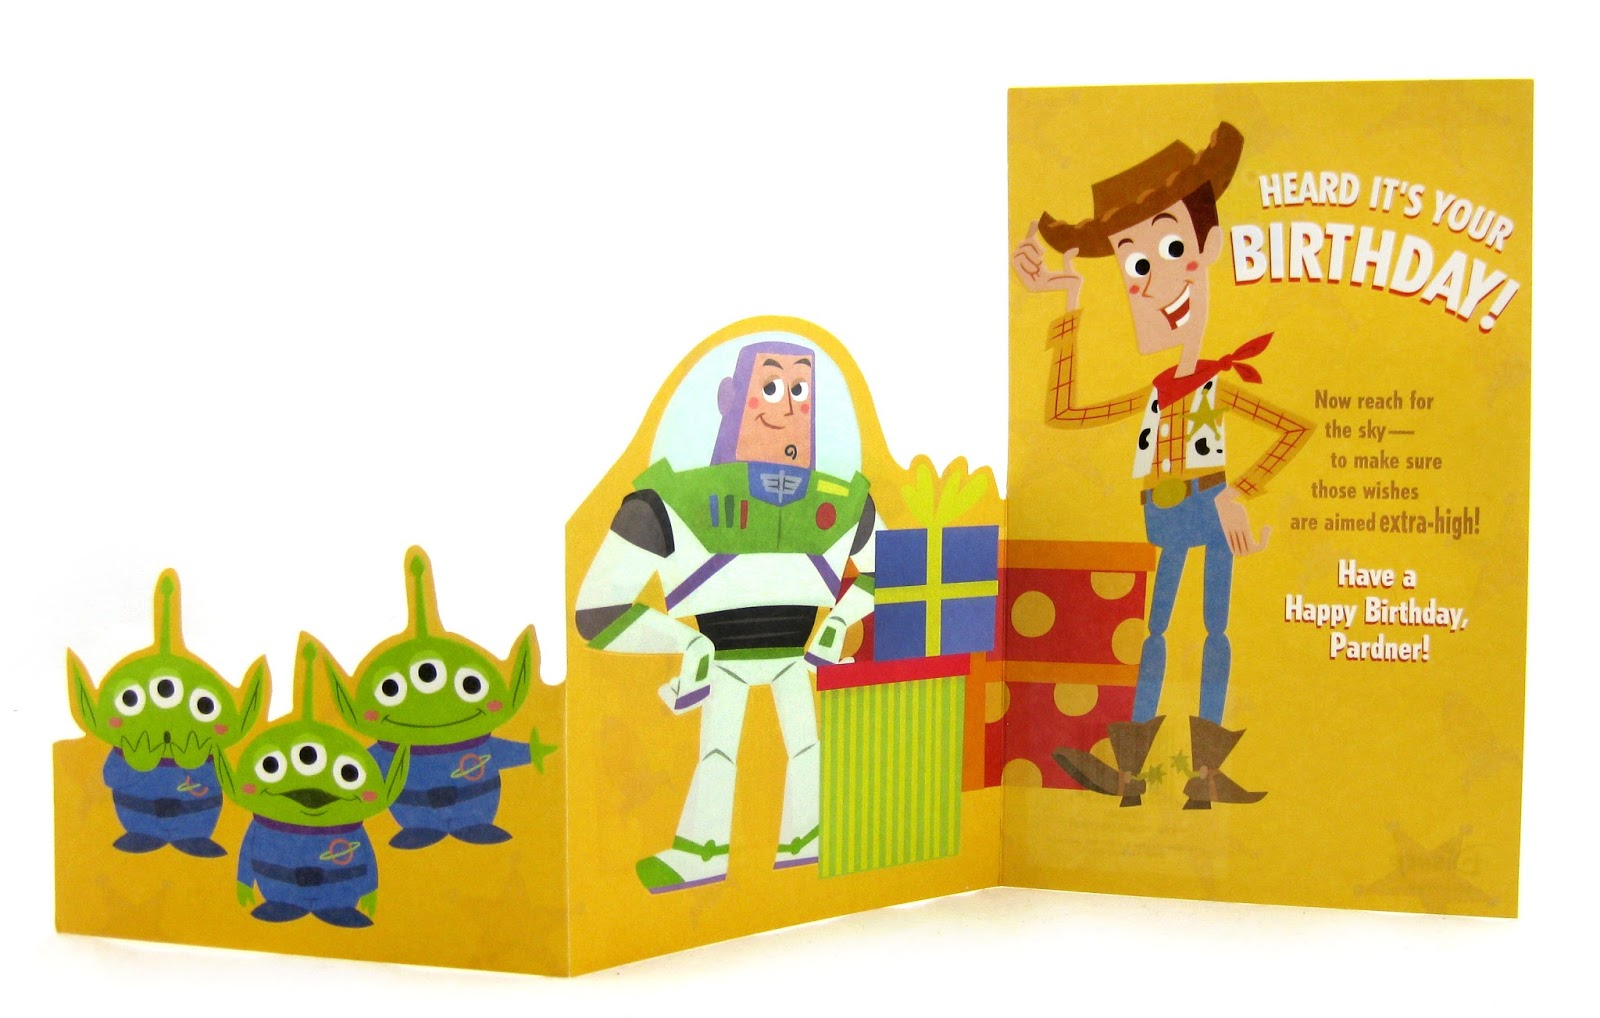 dan the pixar fan toy story birthday card target, Birthday card